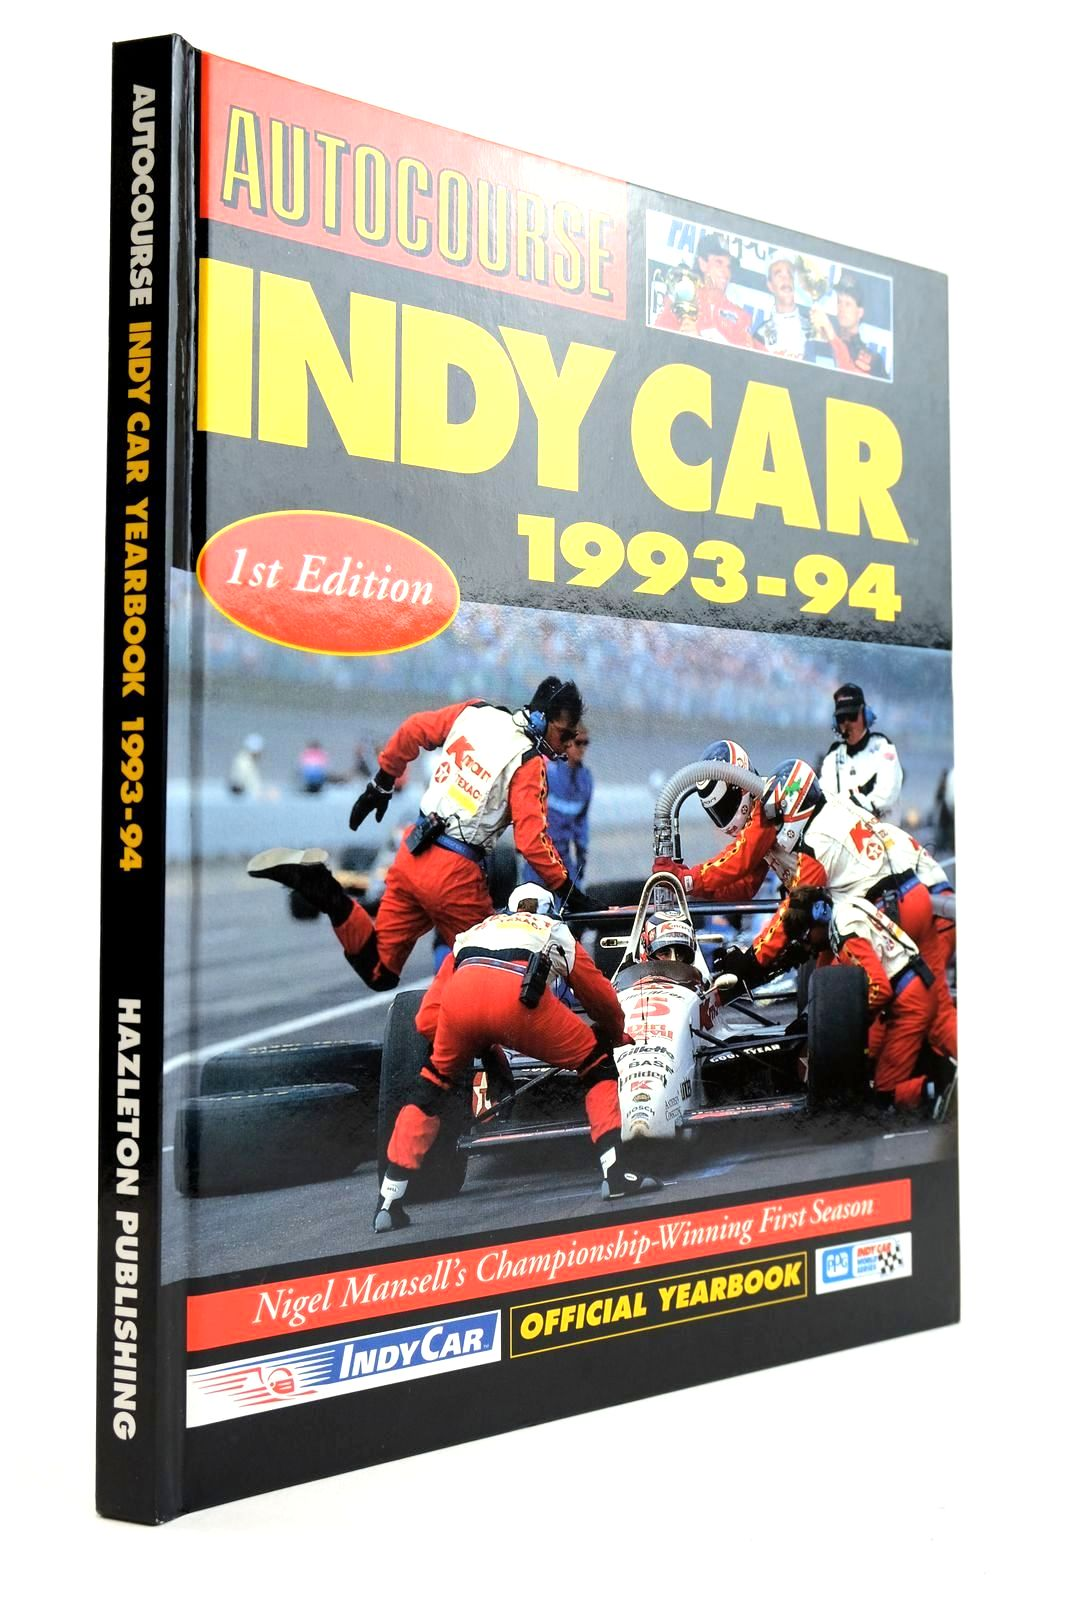 Photo of AUTOCOURSE INDY CAR 1993-94 published by Hazleton Publishing (STOCK CODE: 2132756)  for sale by Stella & Rose's Books